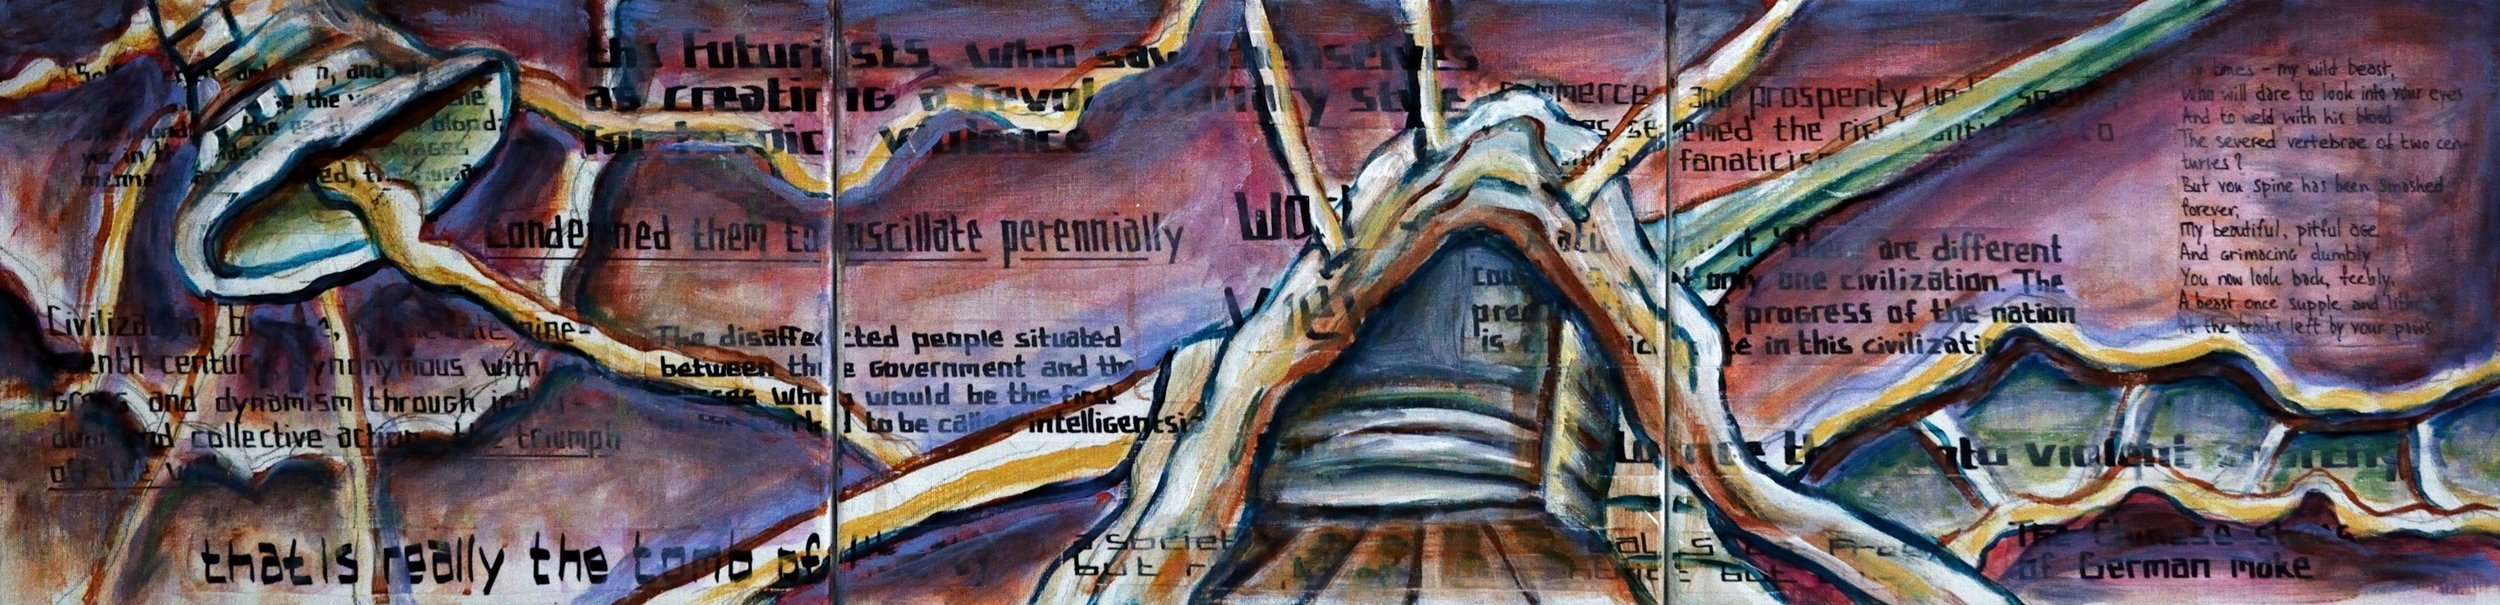 Triptych CR, His Attempt to Replace God with the High Priest of the Nation, acrylic, collage and marker on canvas, 30x120cm